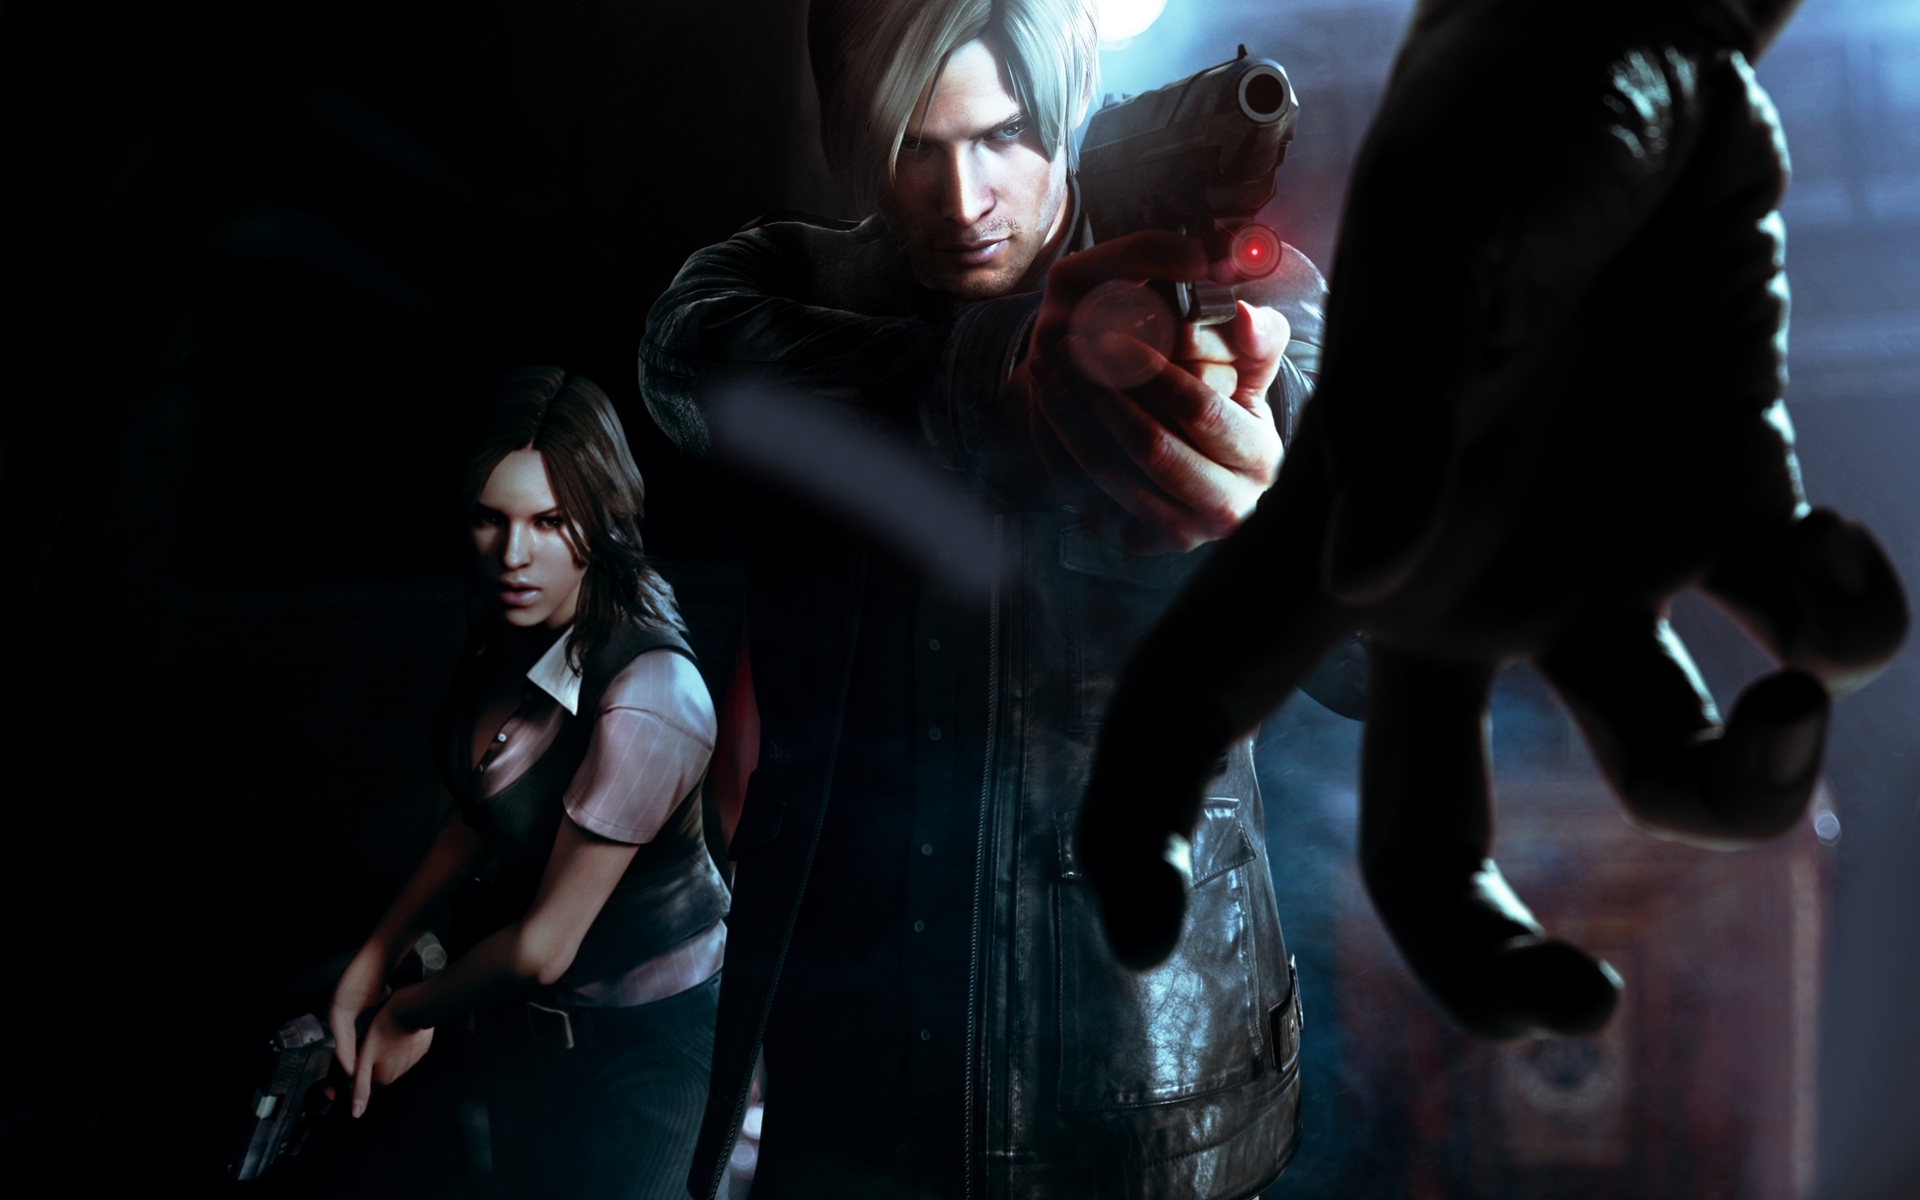 Resident Evil 6 could be coming to PlayStation 4 and Xbox One